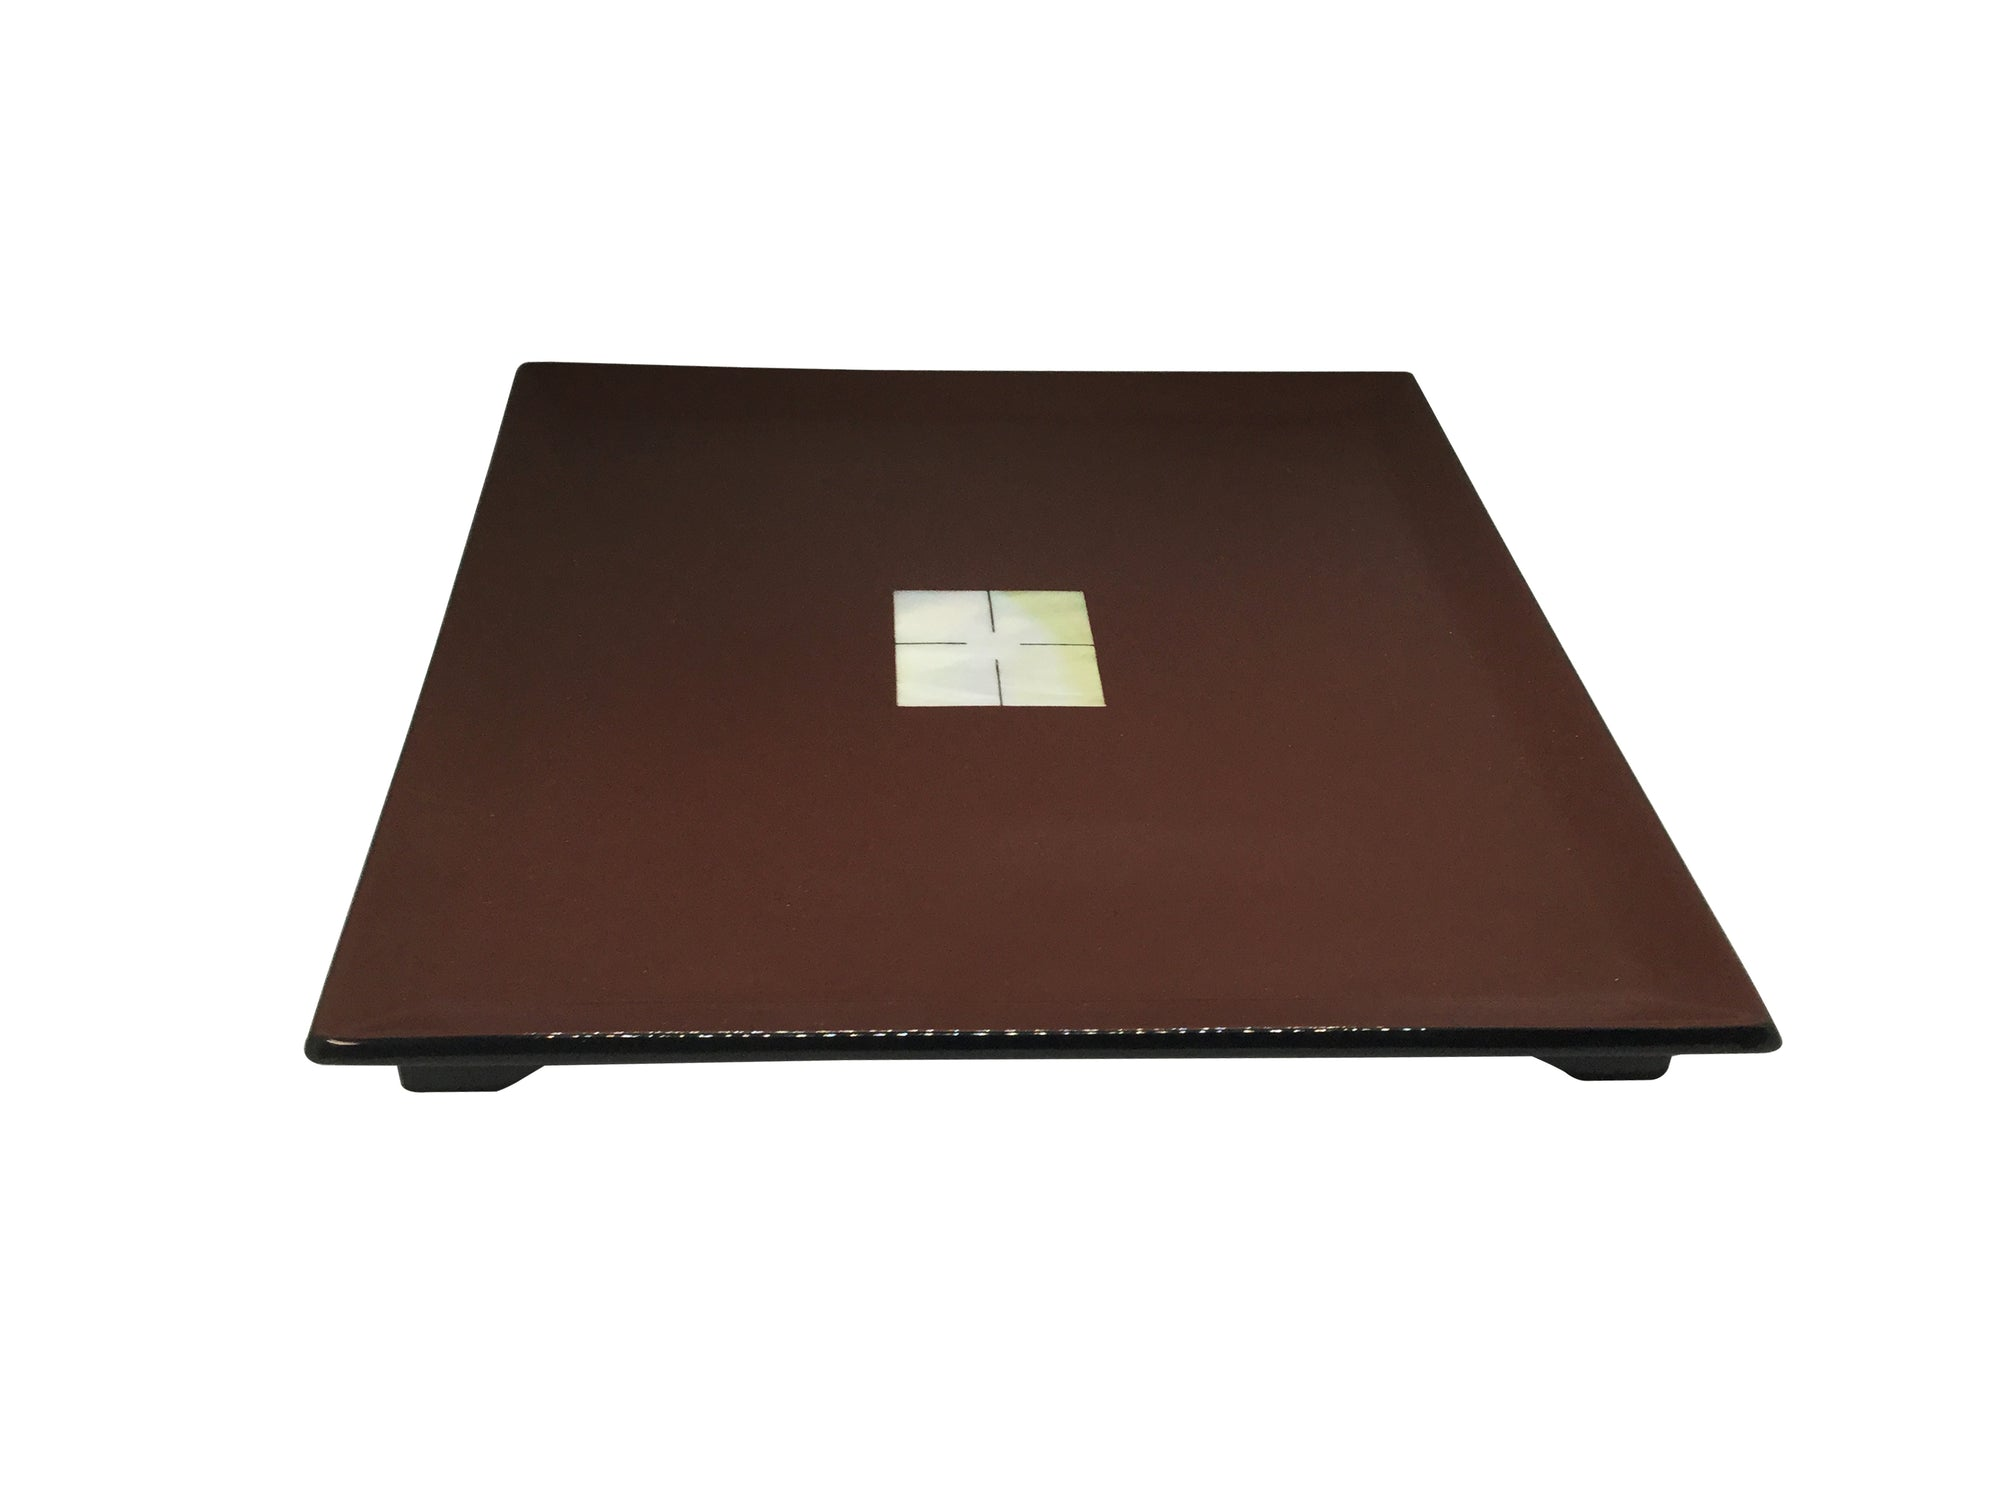 Lacquerware Square Tray with Pearl Shell Feature